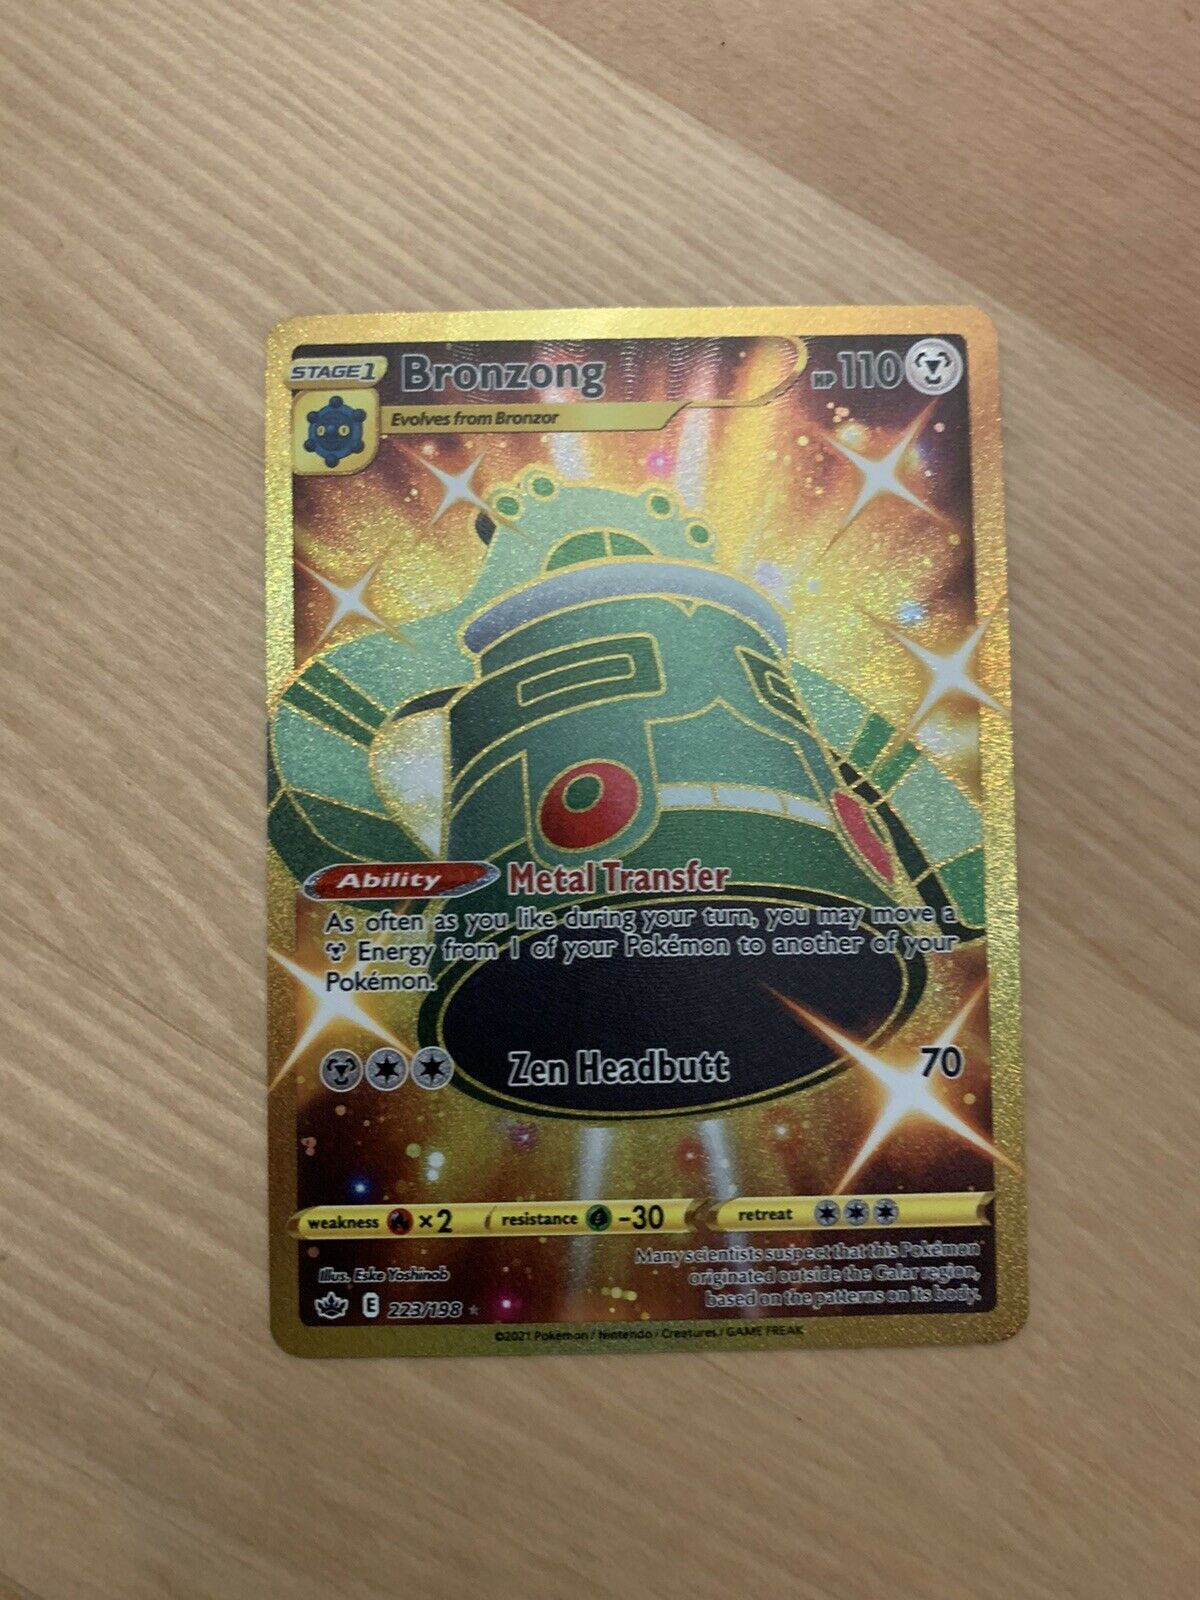 Pokemon Card Shiny Bronzong 223/198 (chilling Reign) Gold Edition